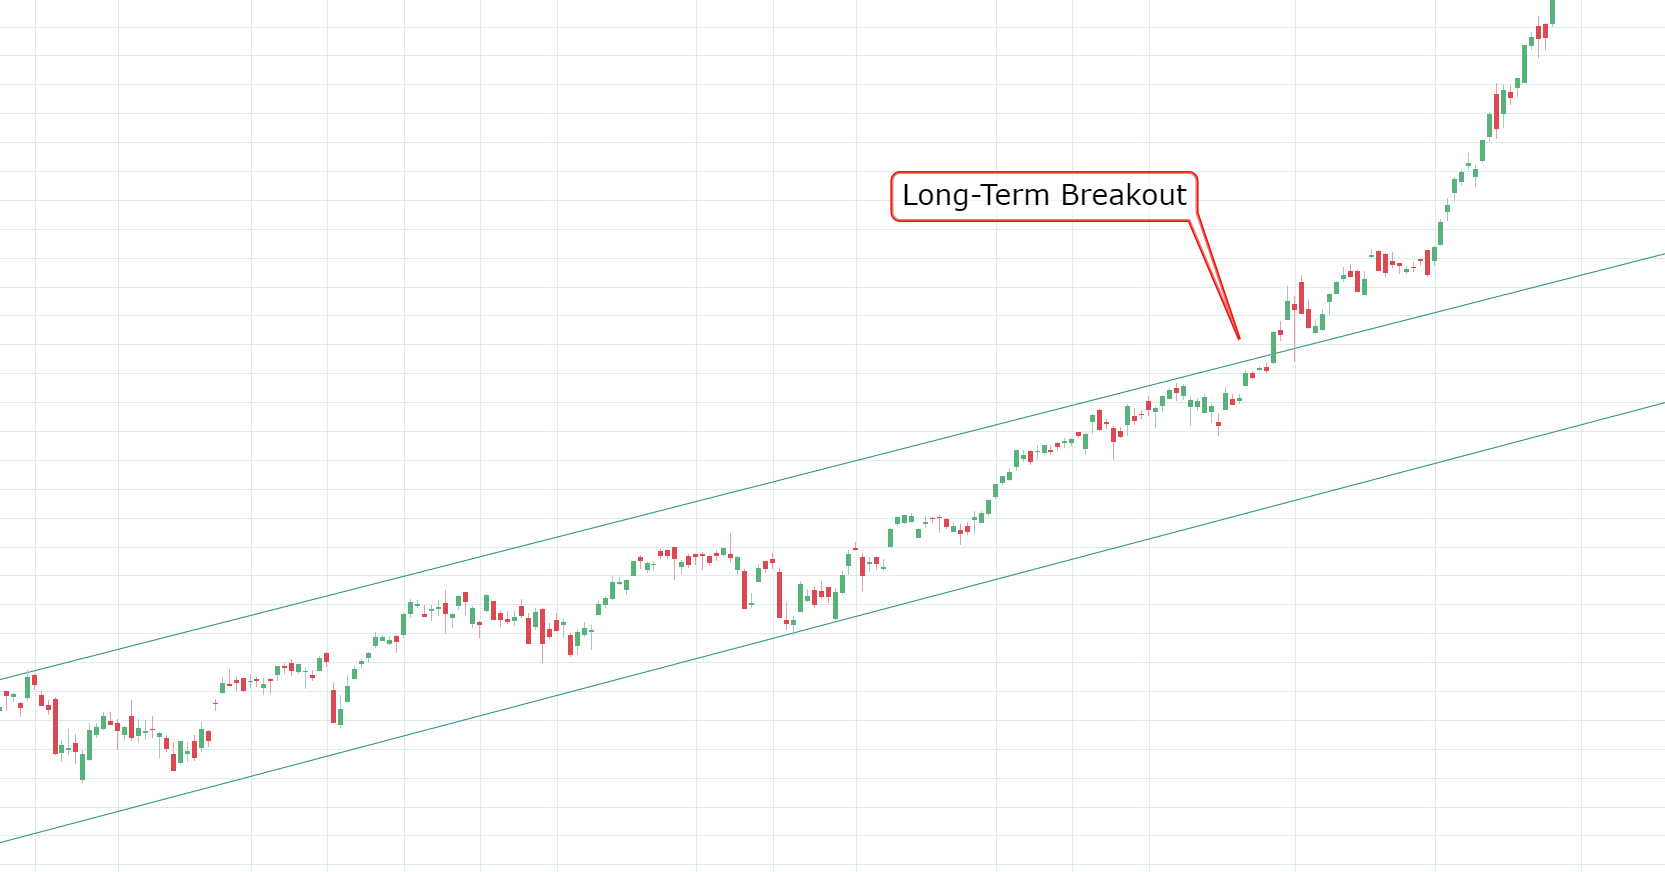 SPY long-term breakout